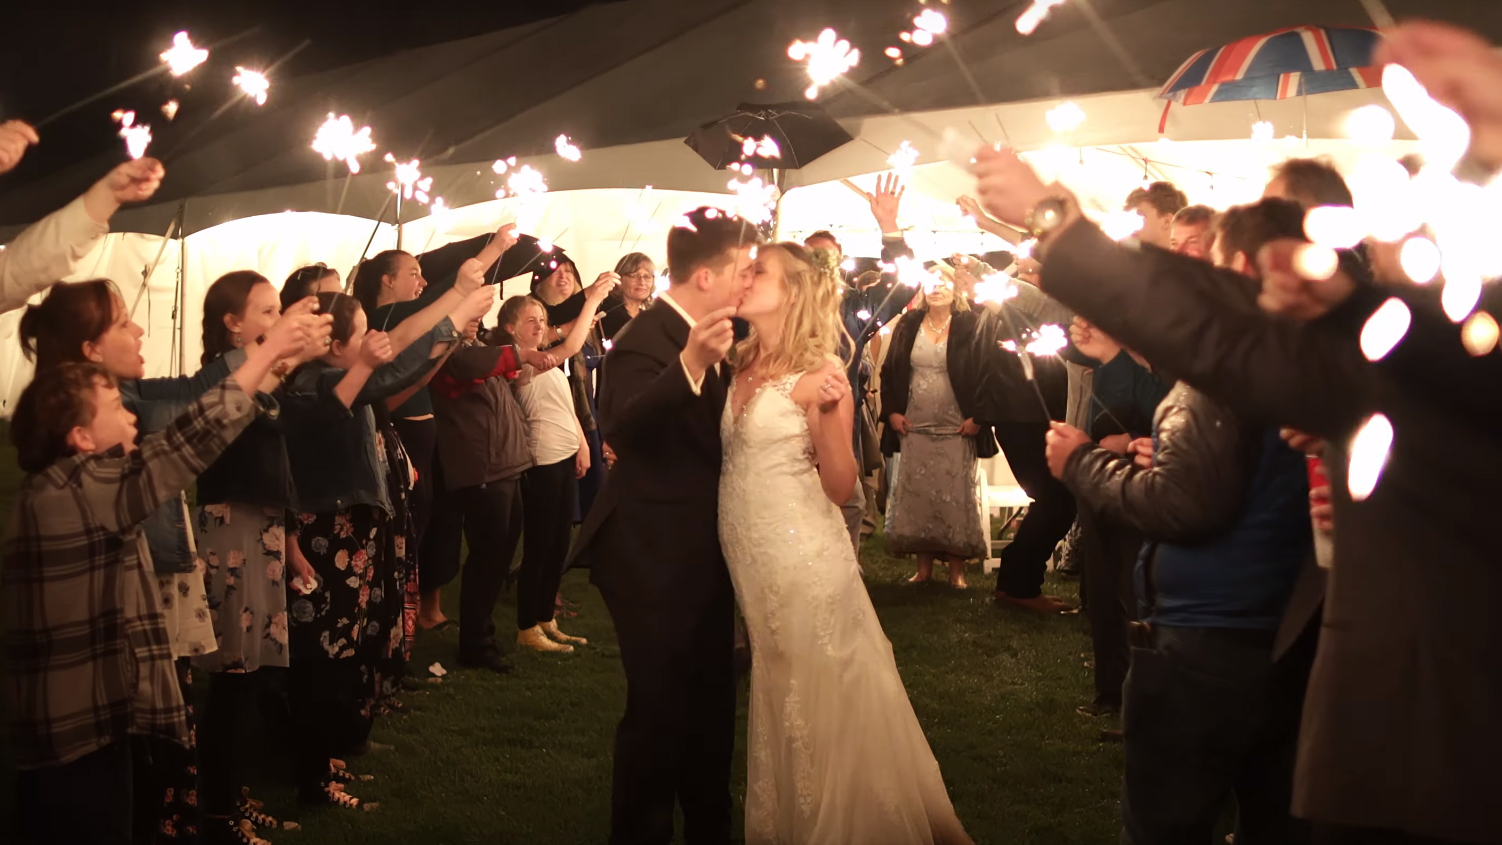 Husband and wife kissing surrounded by family holding sparklers